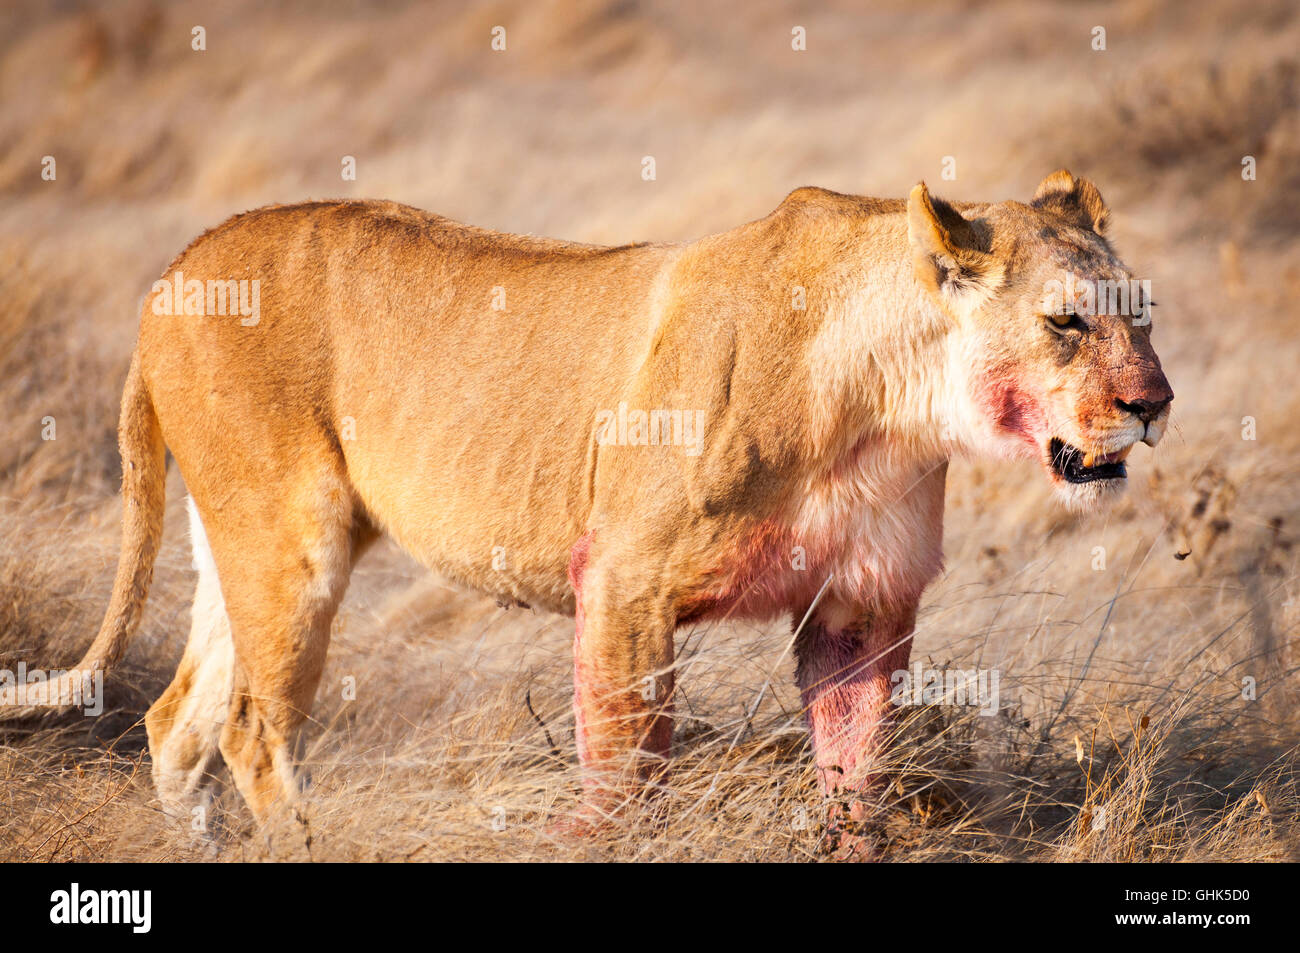 Lioness in the dry grass in the Etosha National Park in Namibia, Africa - Stock Image